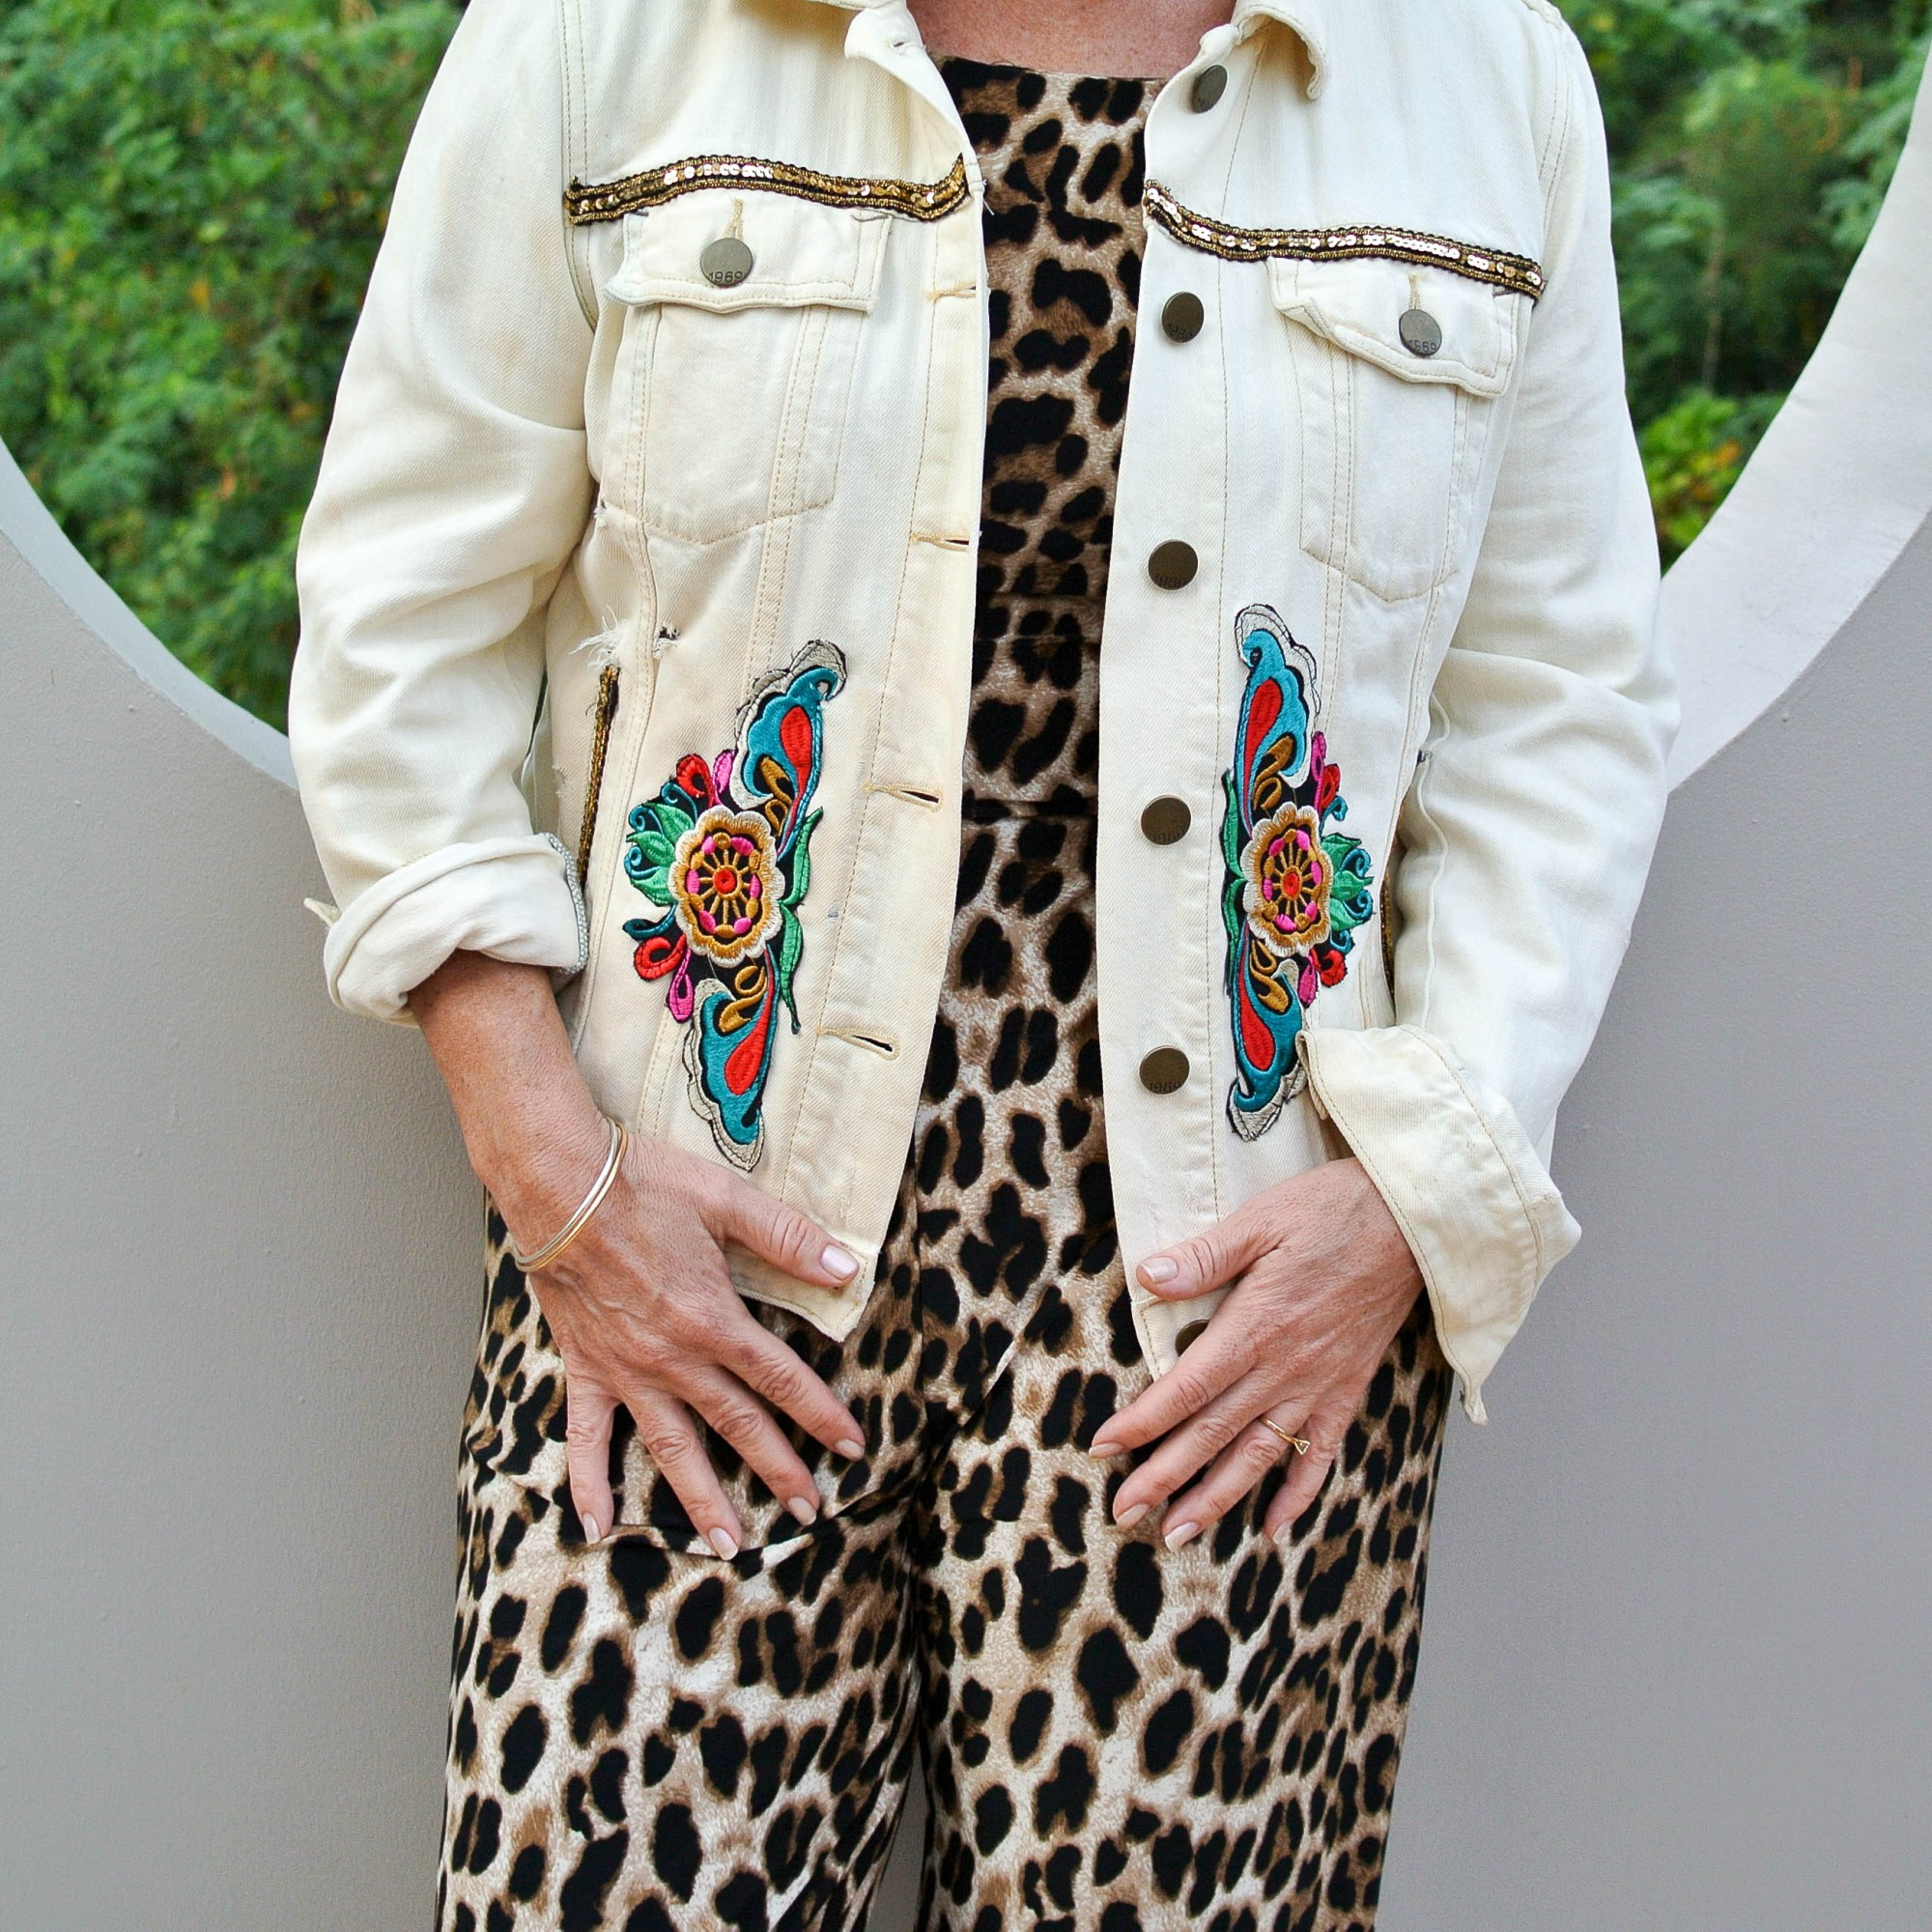 Embellish Jacket DIY 3